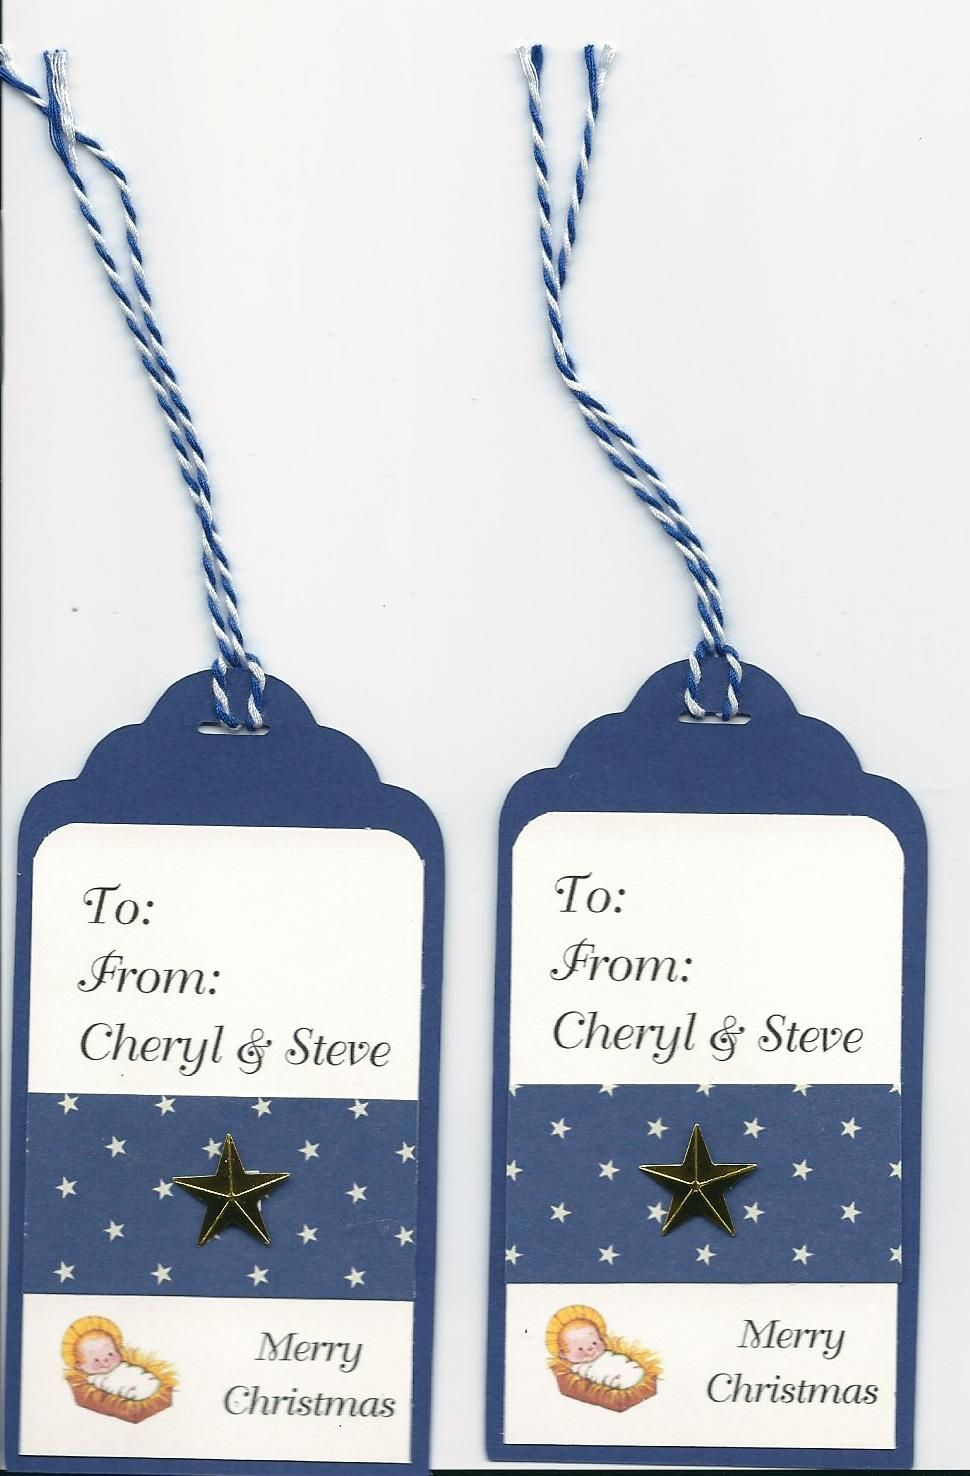 Tags bags boxes and more page 91 cut at 4 on blue 2 x 3 18 tags bags boxes and more page 91 cut at 4 on blue 2 x 3 18 white tag cut with paper cutter rounded on top 1 x 2 blue paper with stars kristyandbryce Images